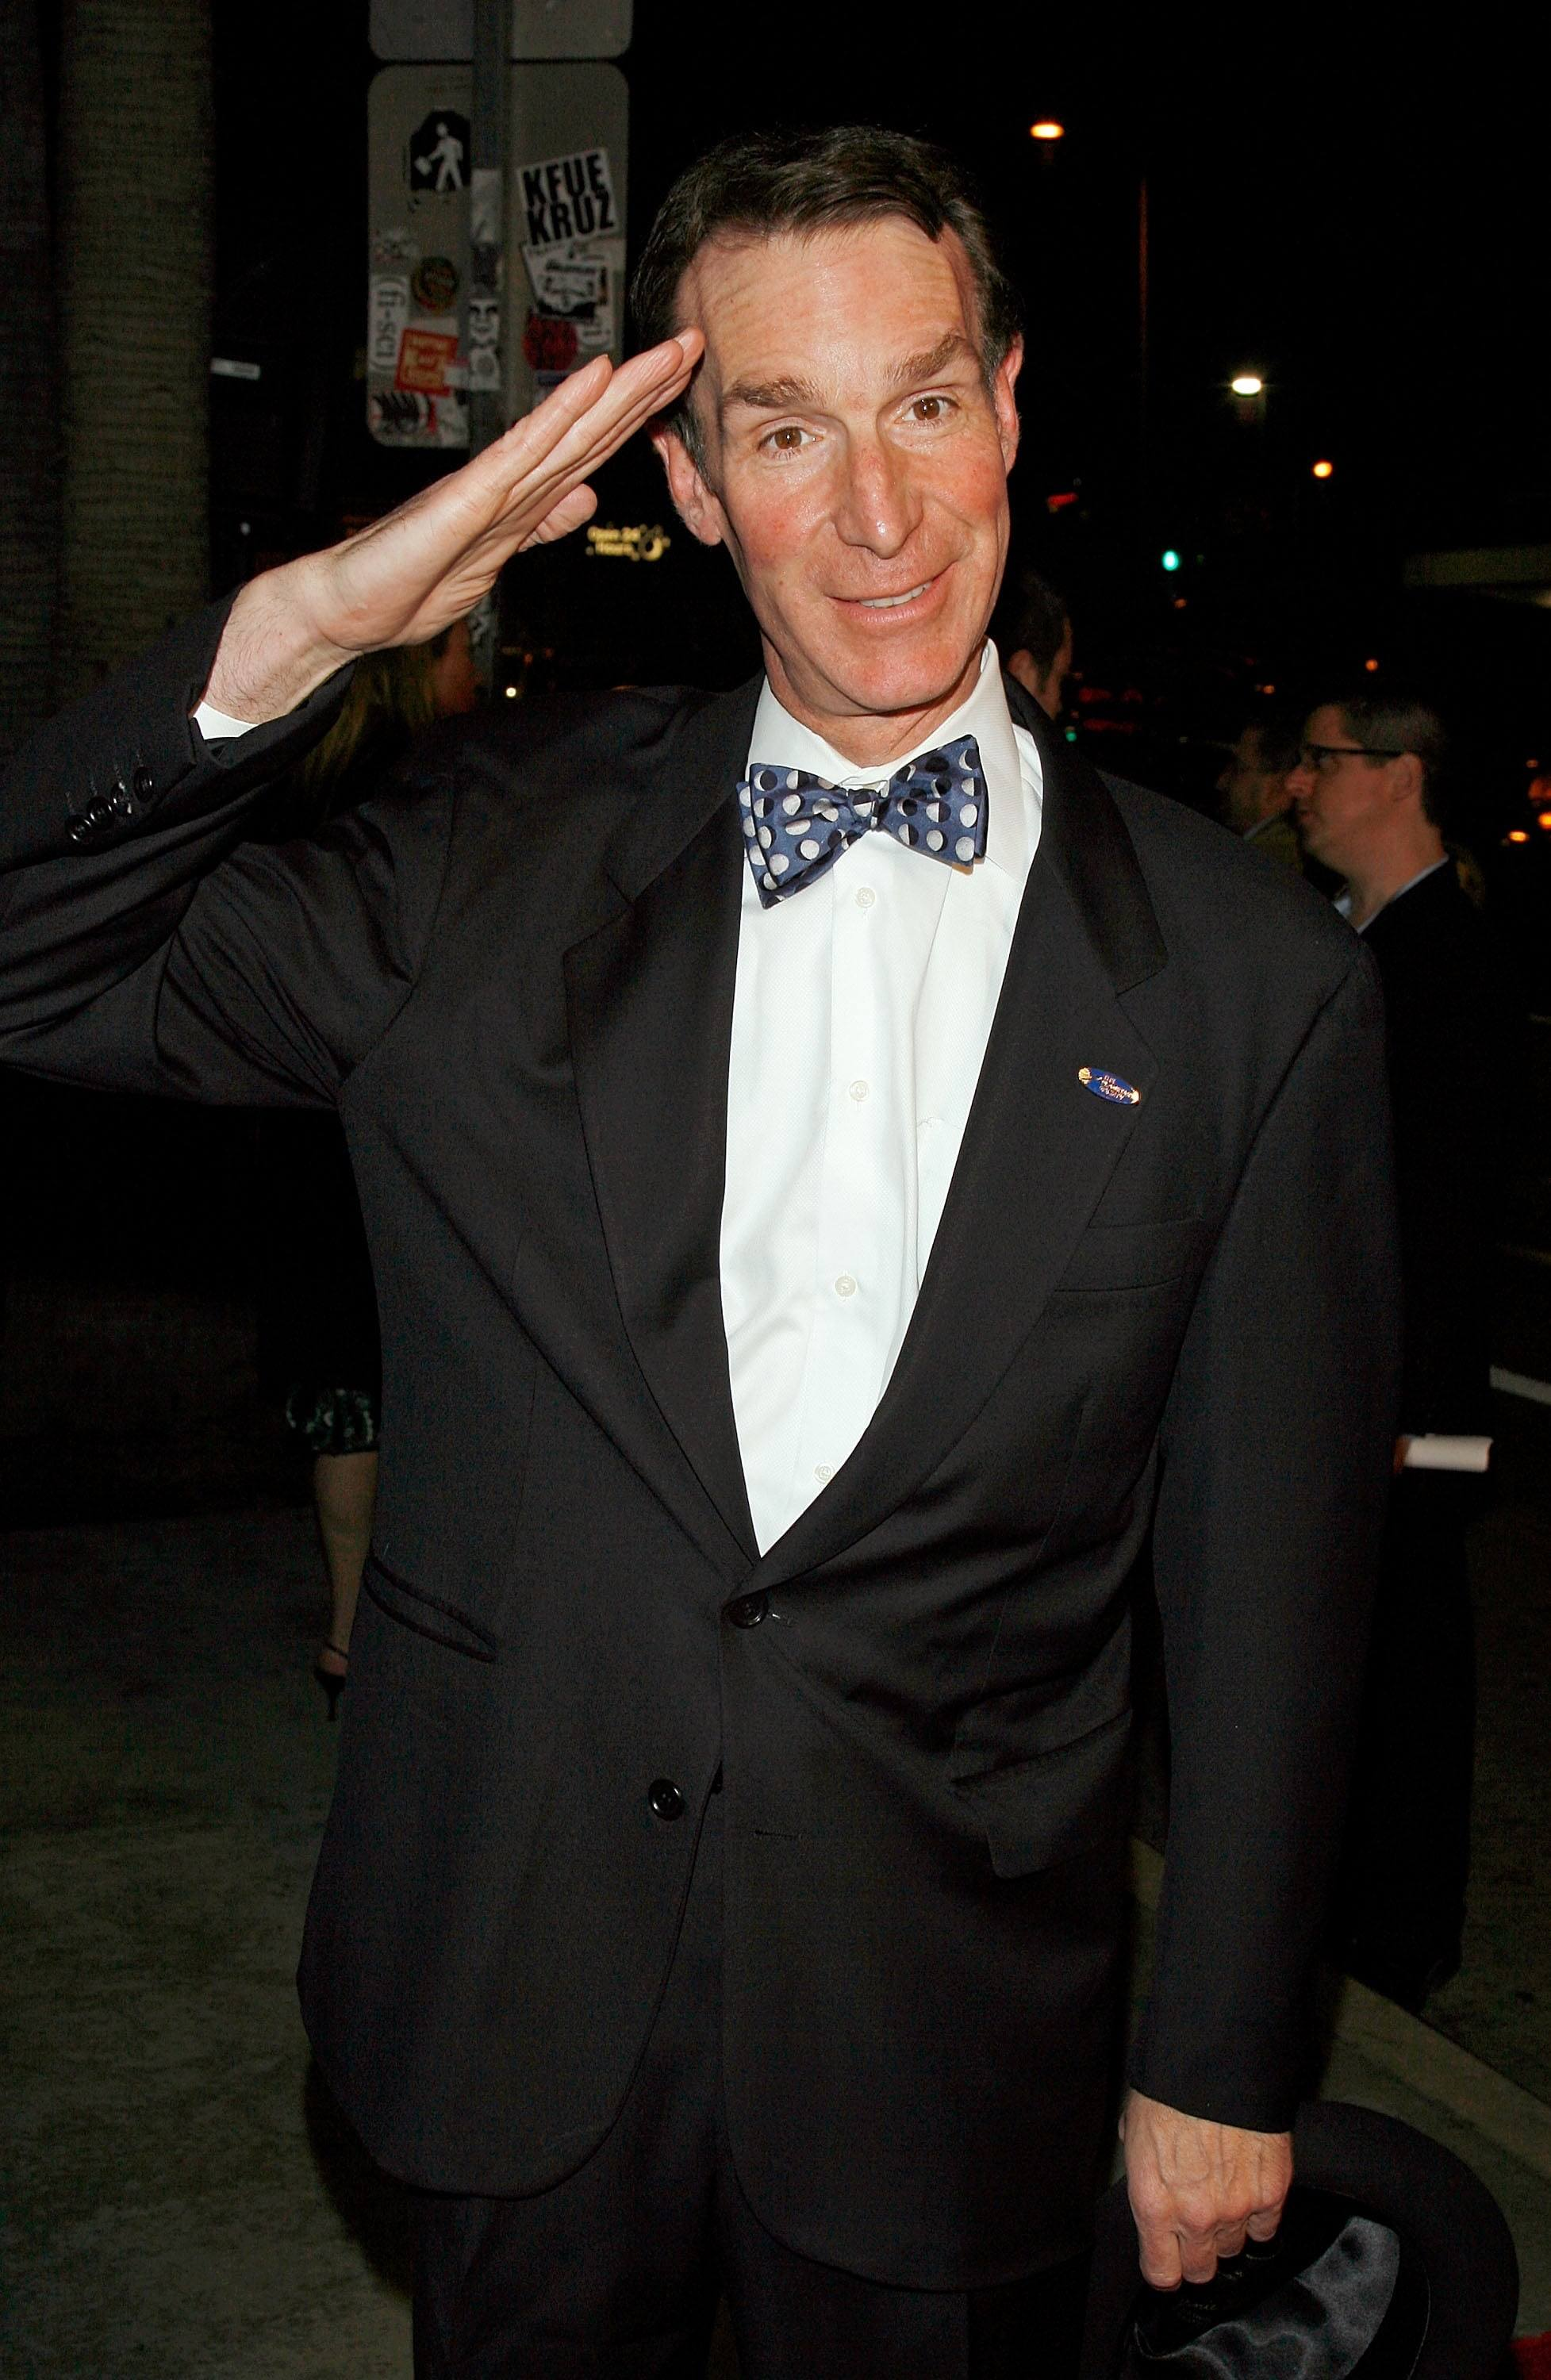 img 0245 10 Things You Probably Didn't Know About Bill Nye The Science Guy